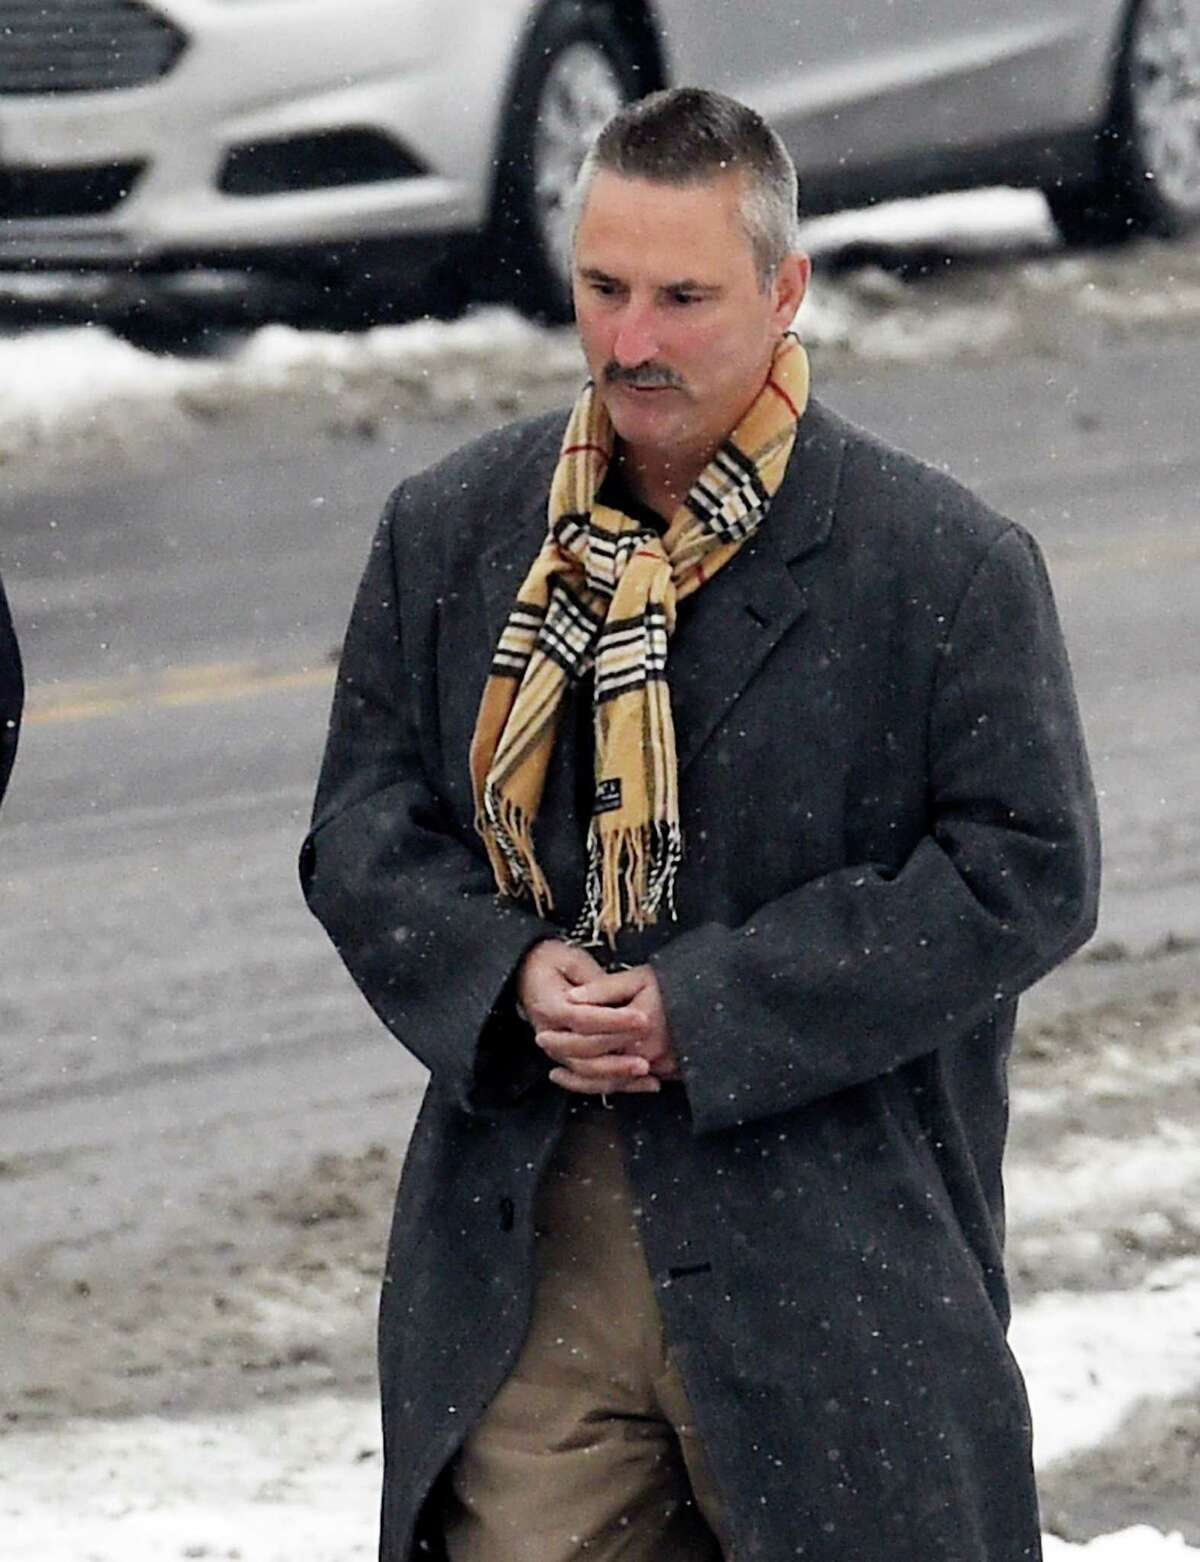 James A. Ferro, 55, arrives at the Albany City Court Monday afternoon Jan. 12, 2015, in Albany, N.Y. to appear on criminal charges that were brought against the former director of operations for the state Department of Corrections and Community Supervision's inspector general's office by the state Inspector General's office. (Skip Dickstein/Times Union)